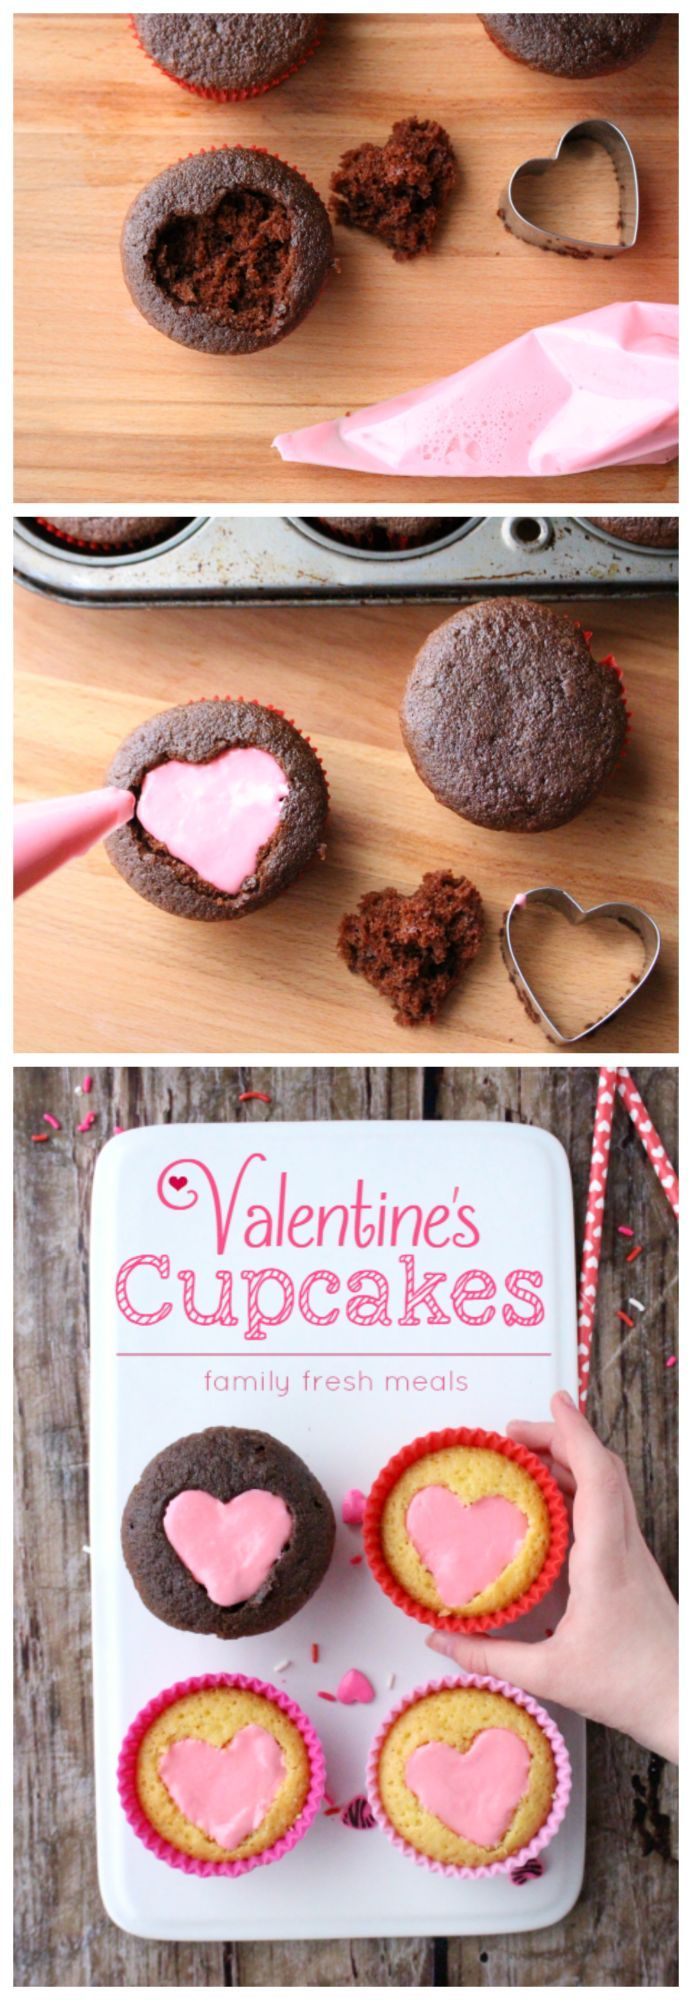 Easy Heart Valentine Cupcakes Recipe - Perfect for Valentine's Day!  http://FamilyFreshMeals.com